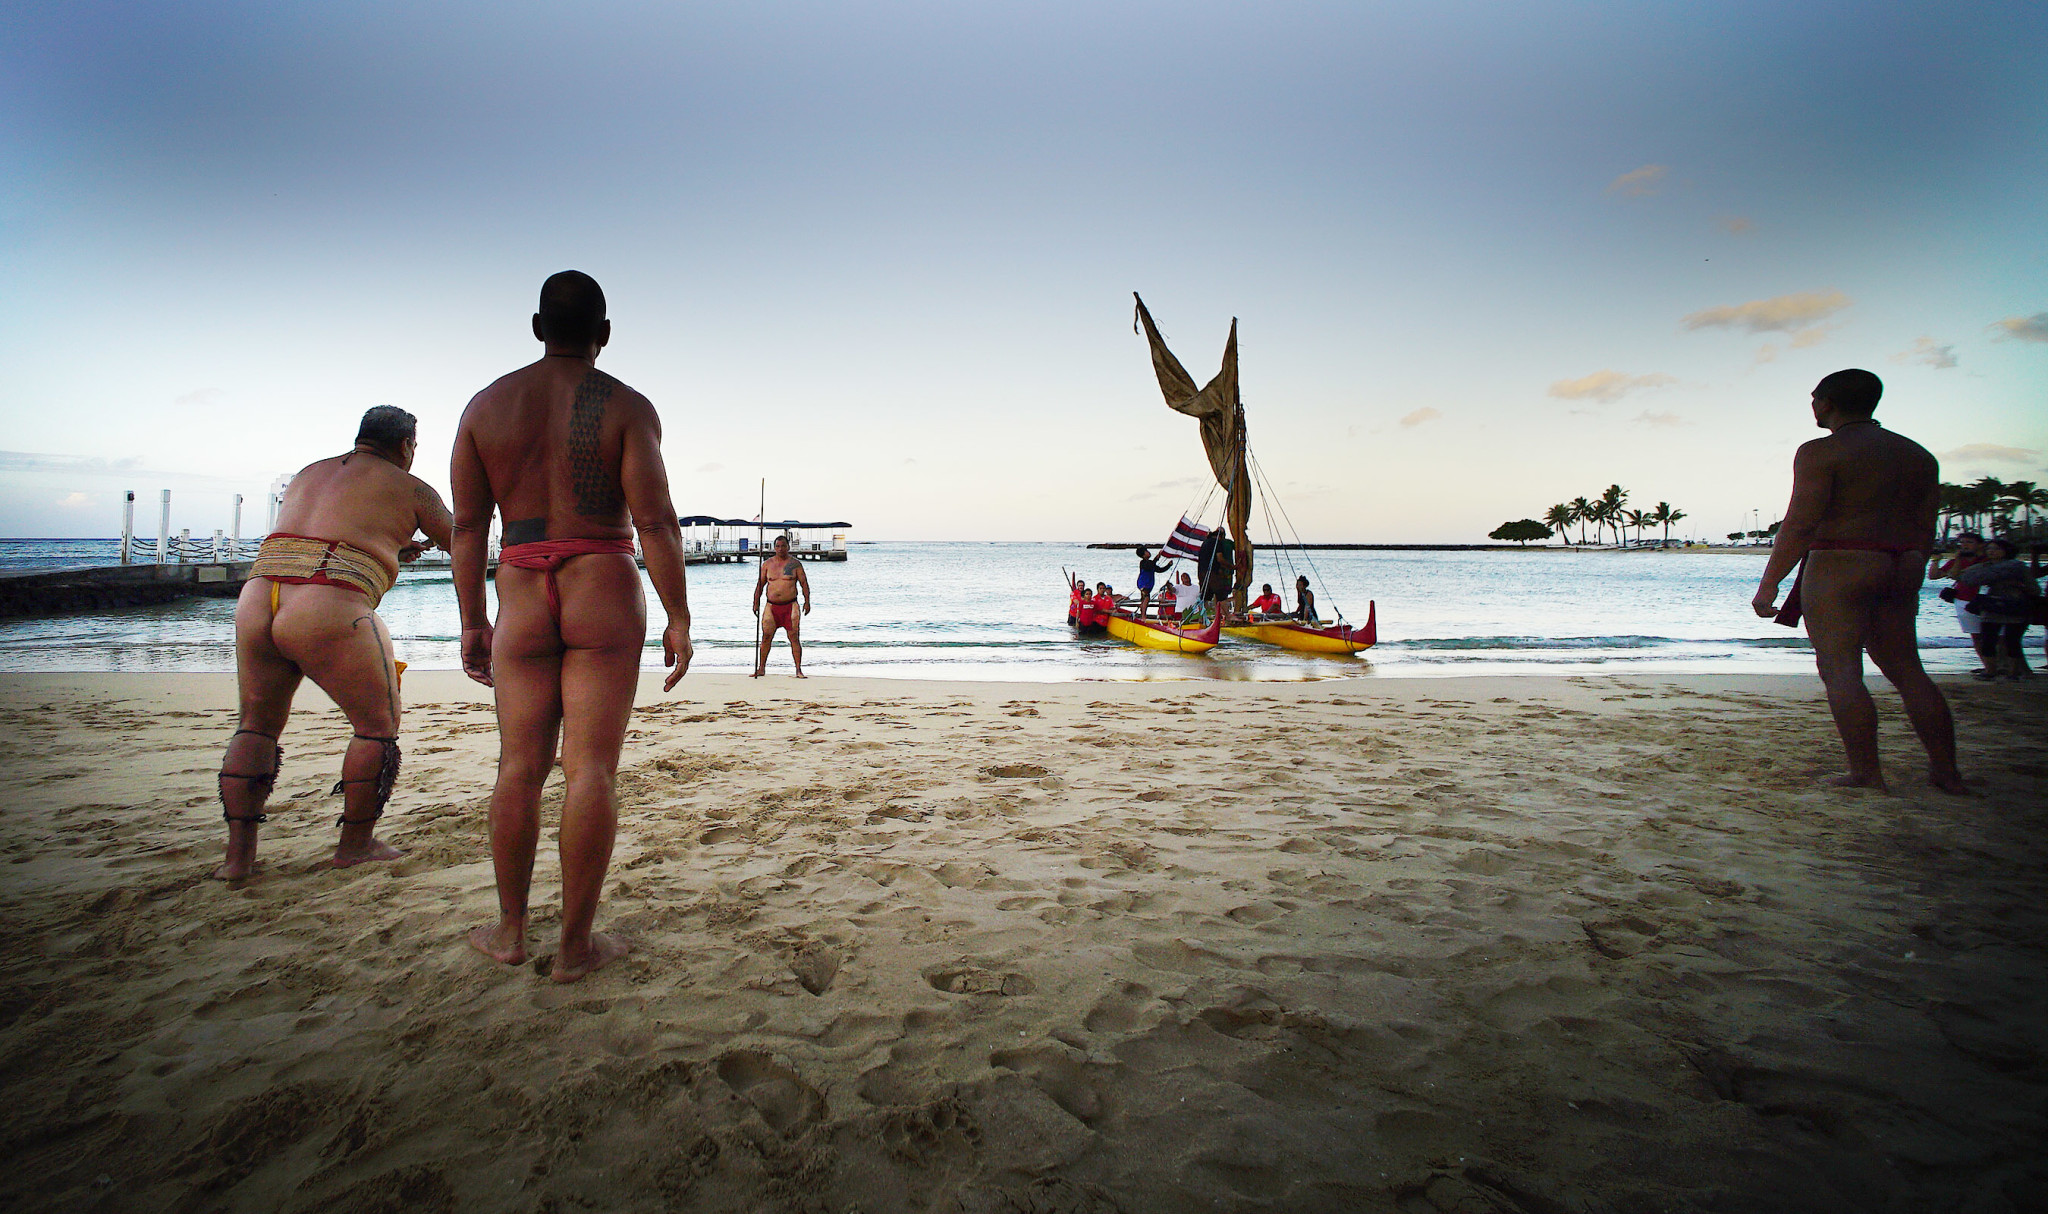 <p>In an event heralding the first morning of the World Conservation Congress, adouble-hulled canoe arrived Thursday on Waikiki Beach and was greeted by men in malo — traditional Hawaiian warrior garb— whothrew a spear and presented a welcoming gift of a coconut plant.</p>